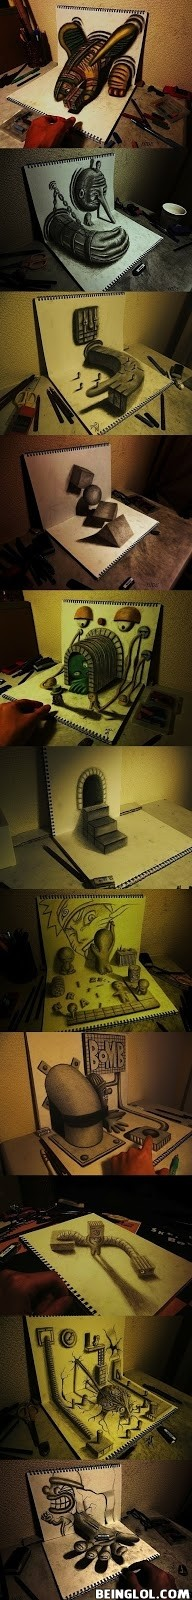 3d Drawings On Sketchbook !